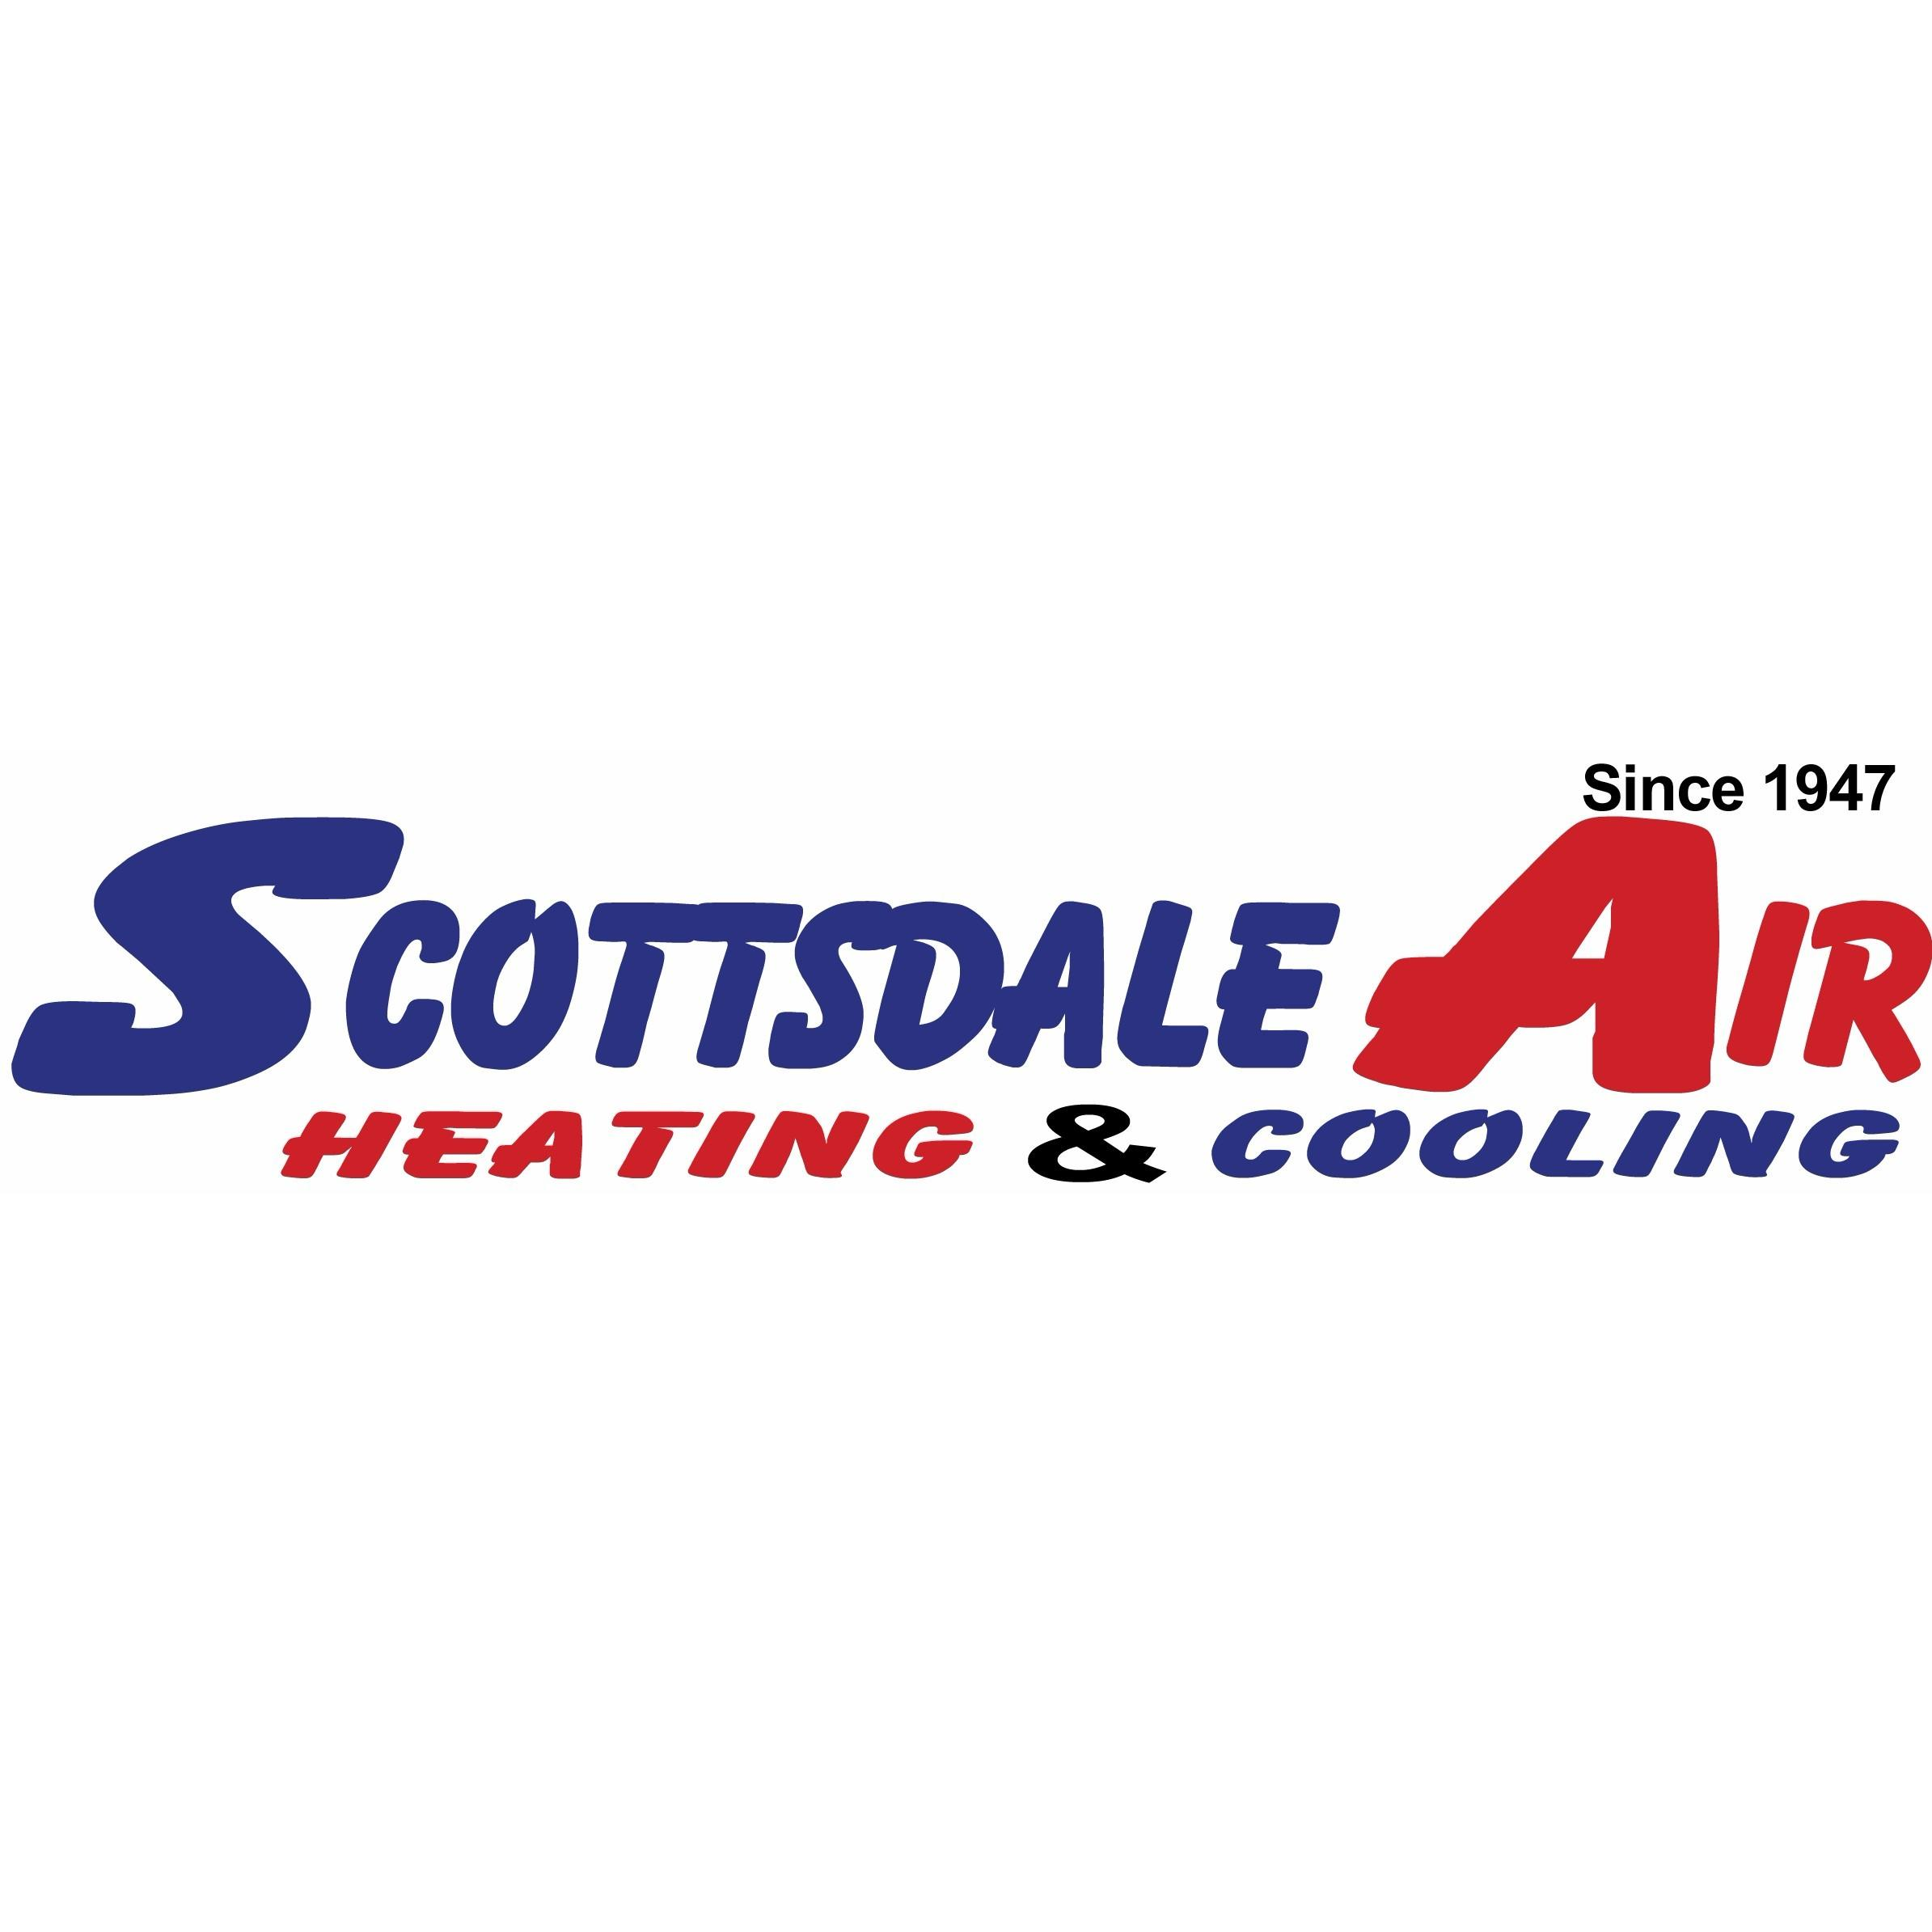 Scottsdale Air Heating & Cooling image 0